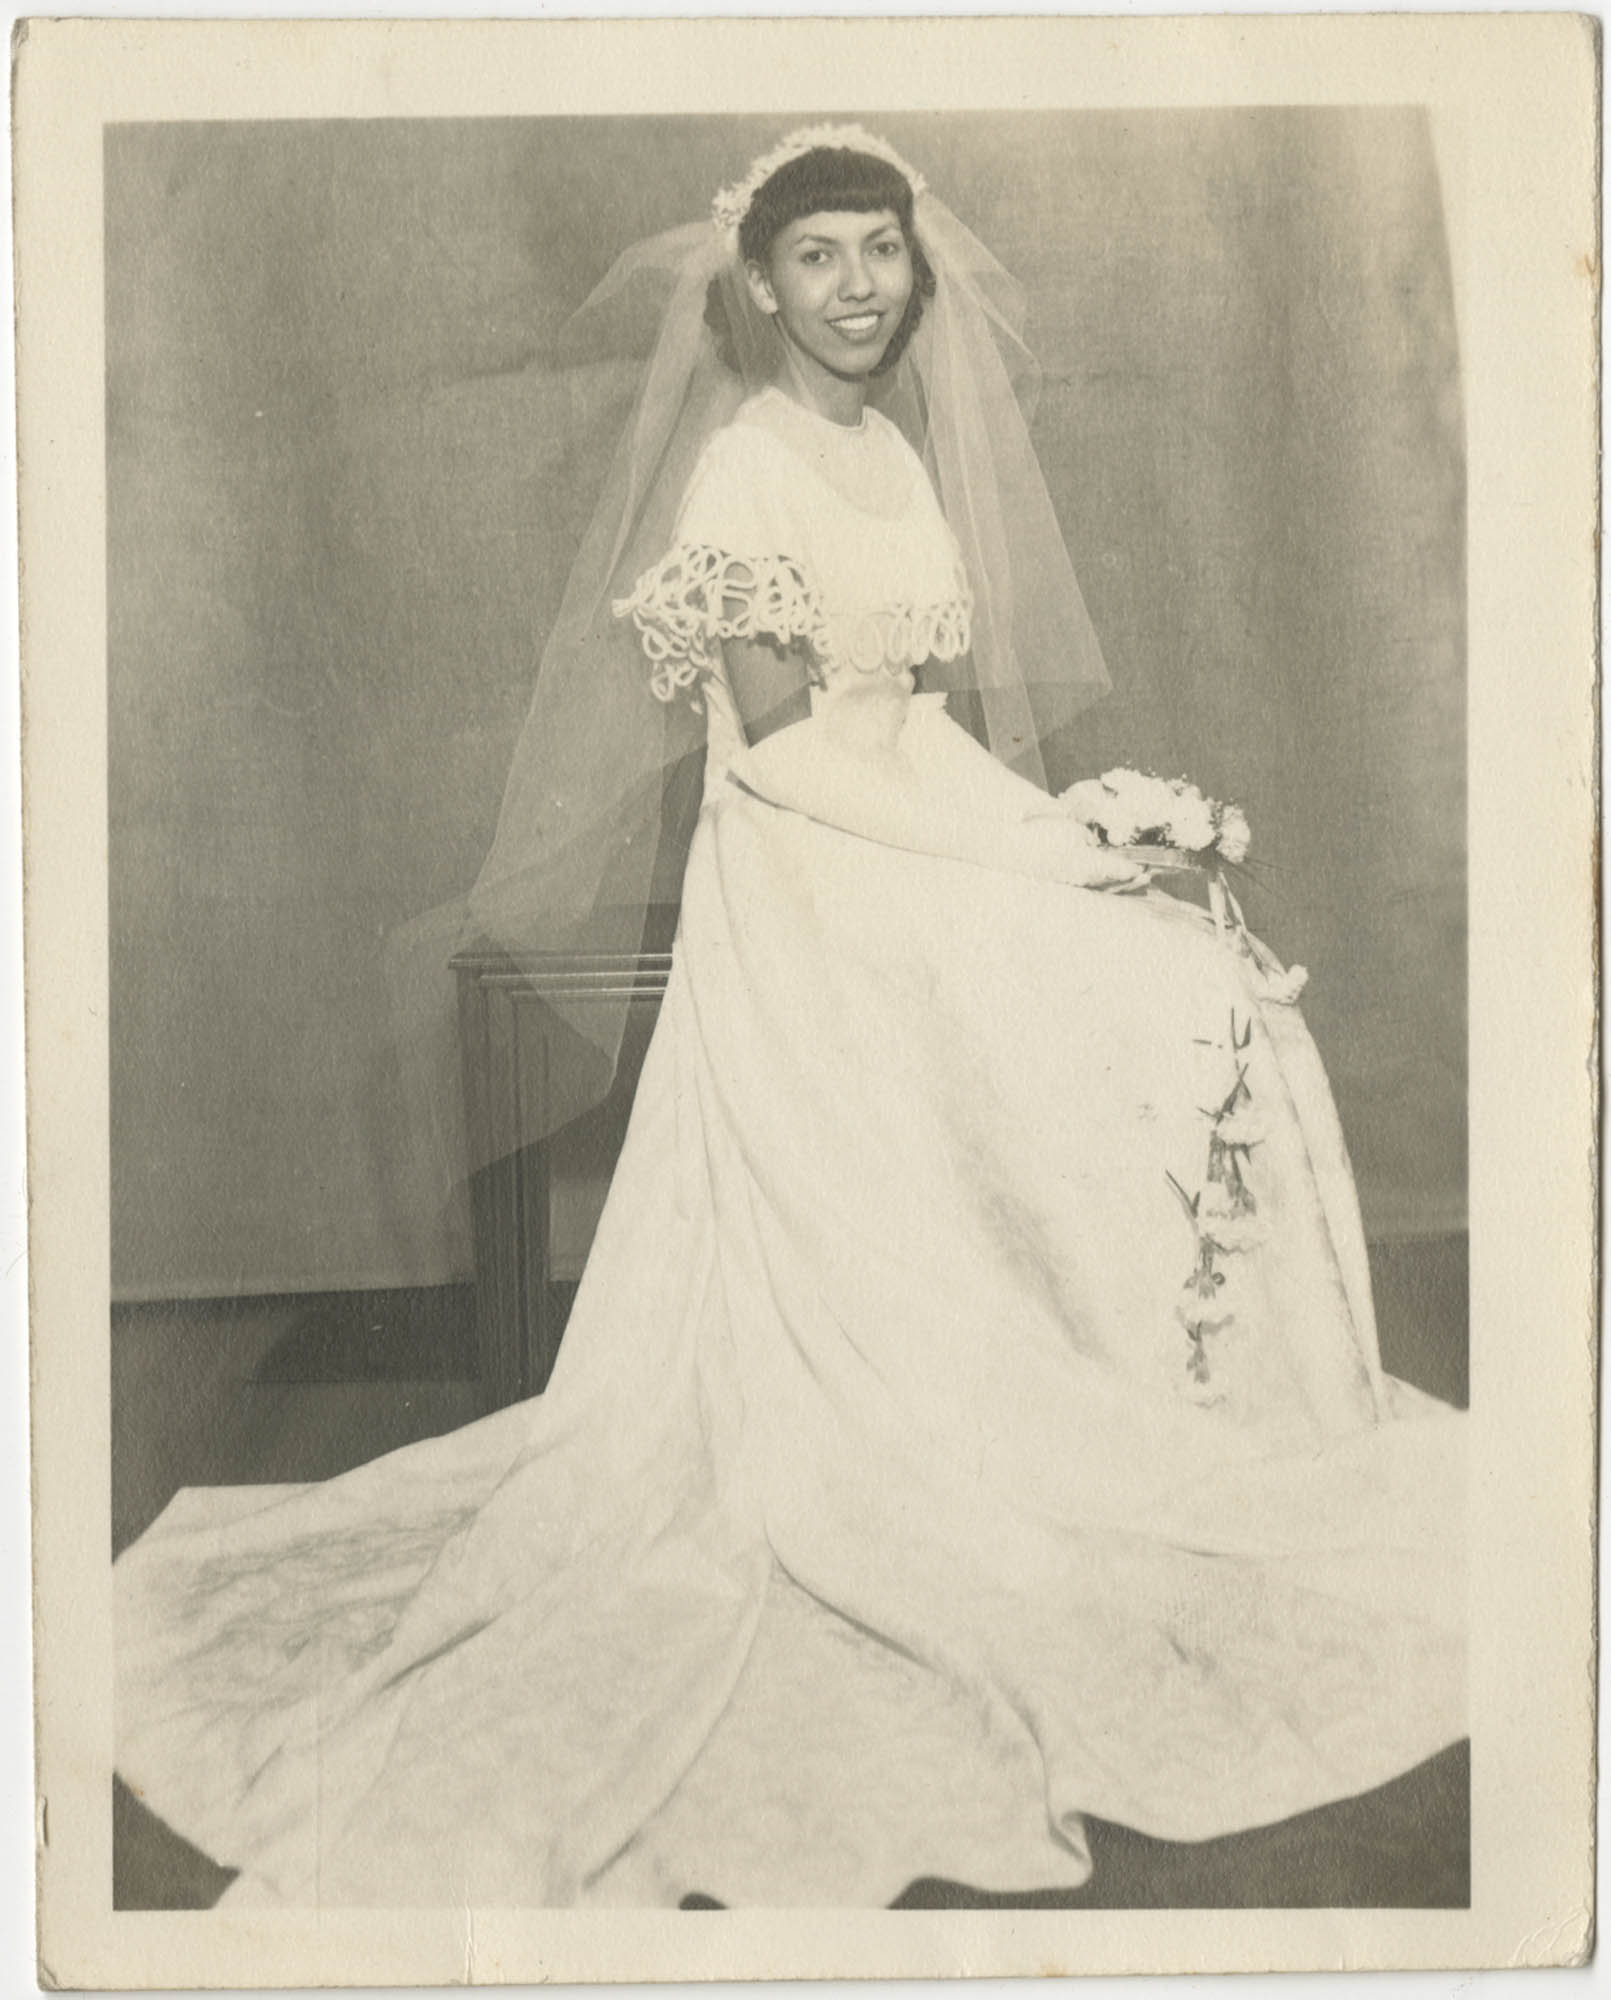 Photograph of a Woman Wearing a Wedding Gown